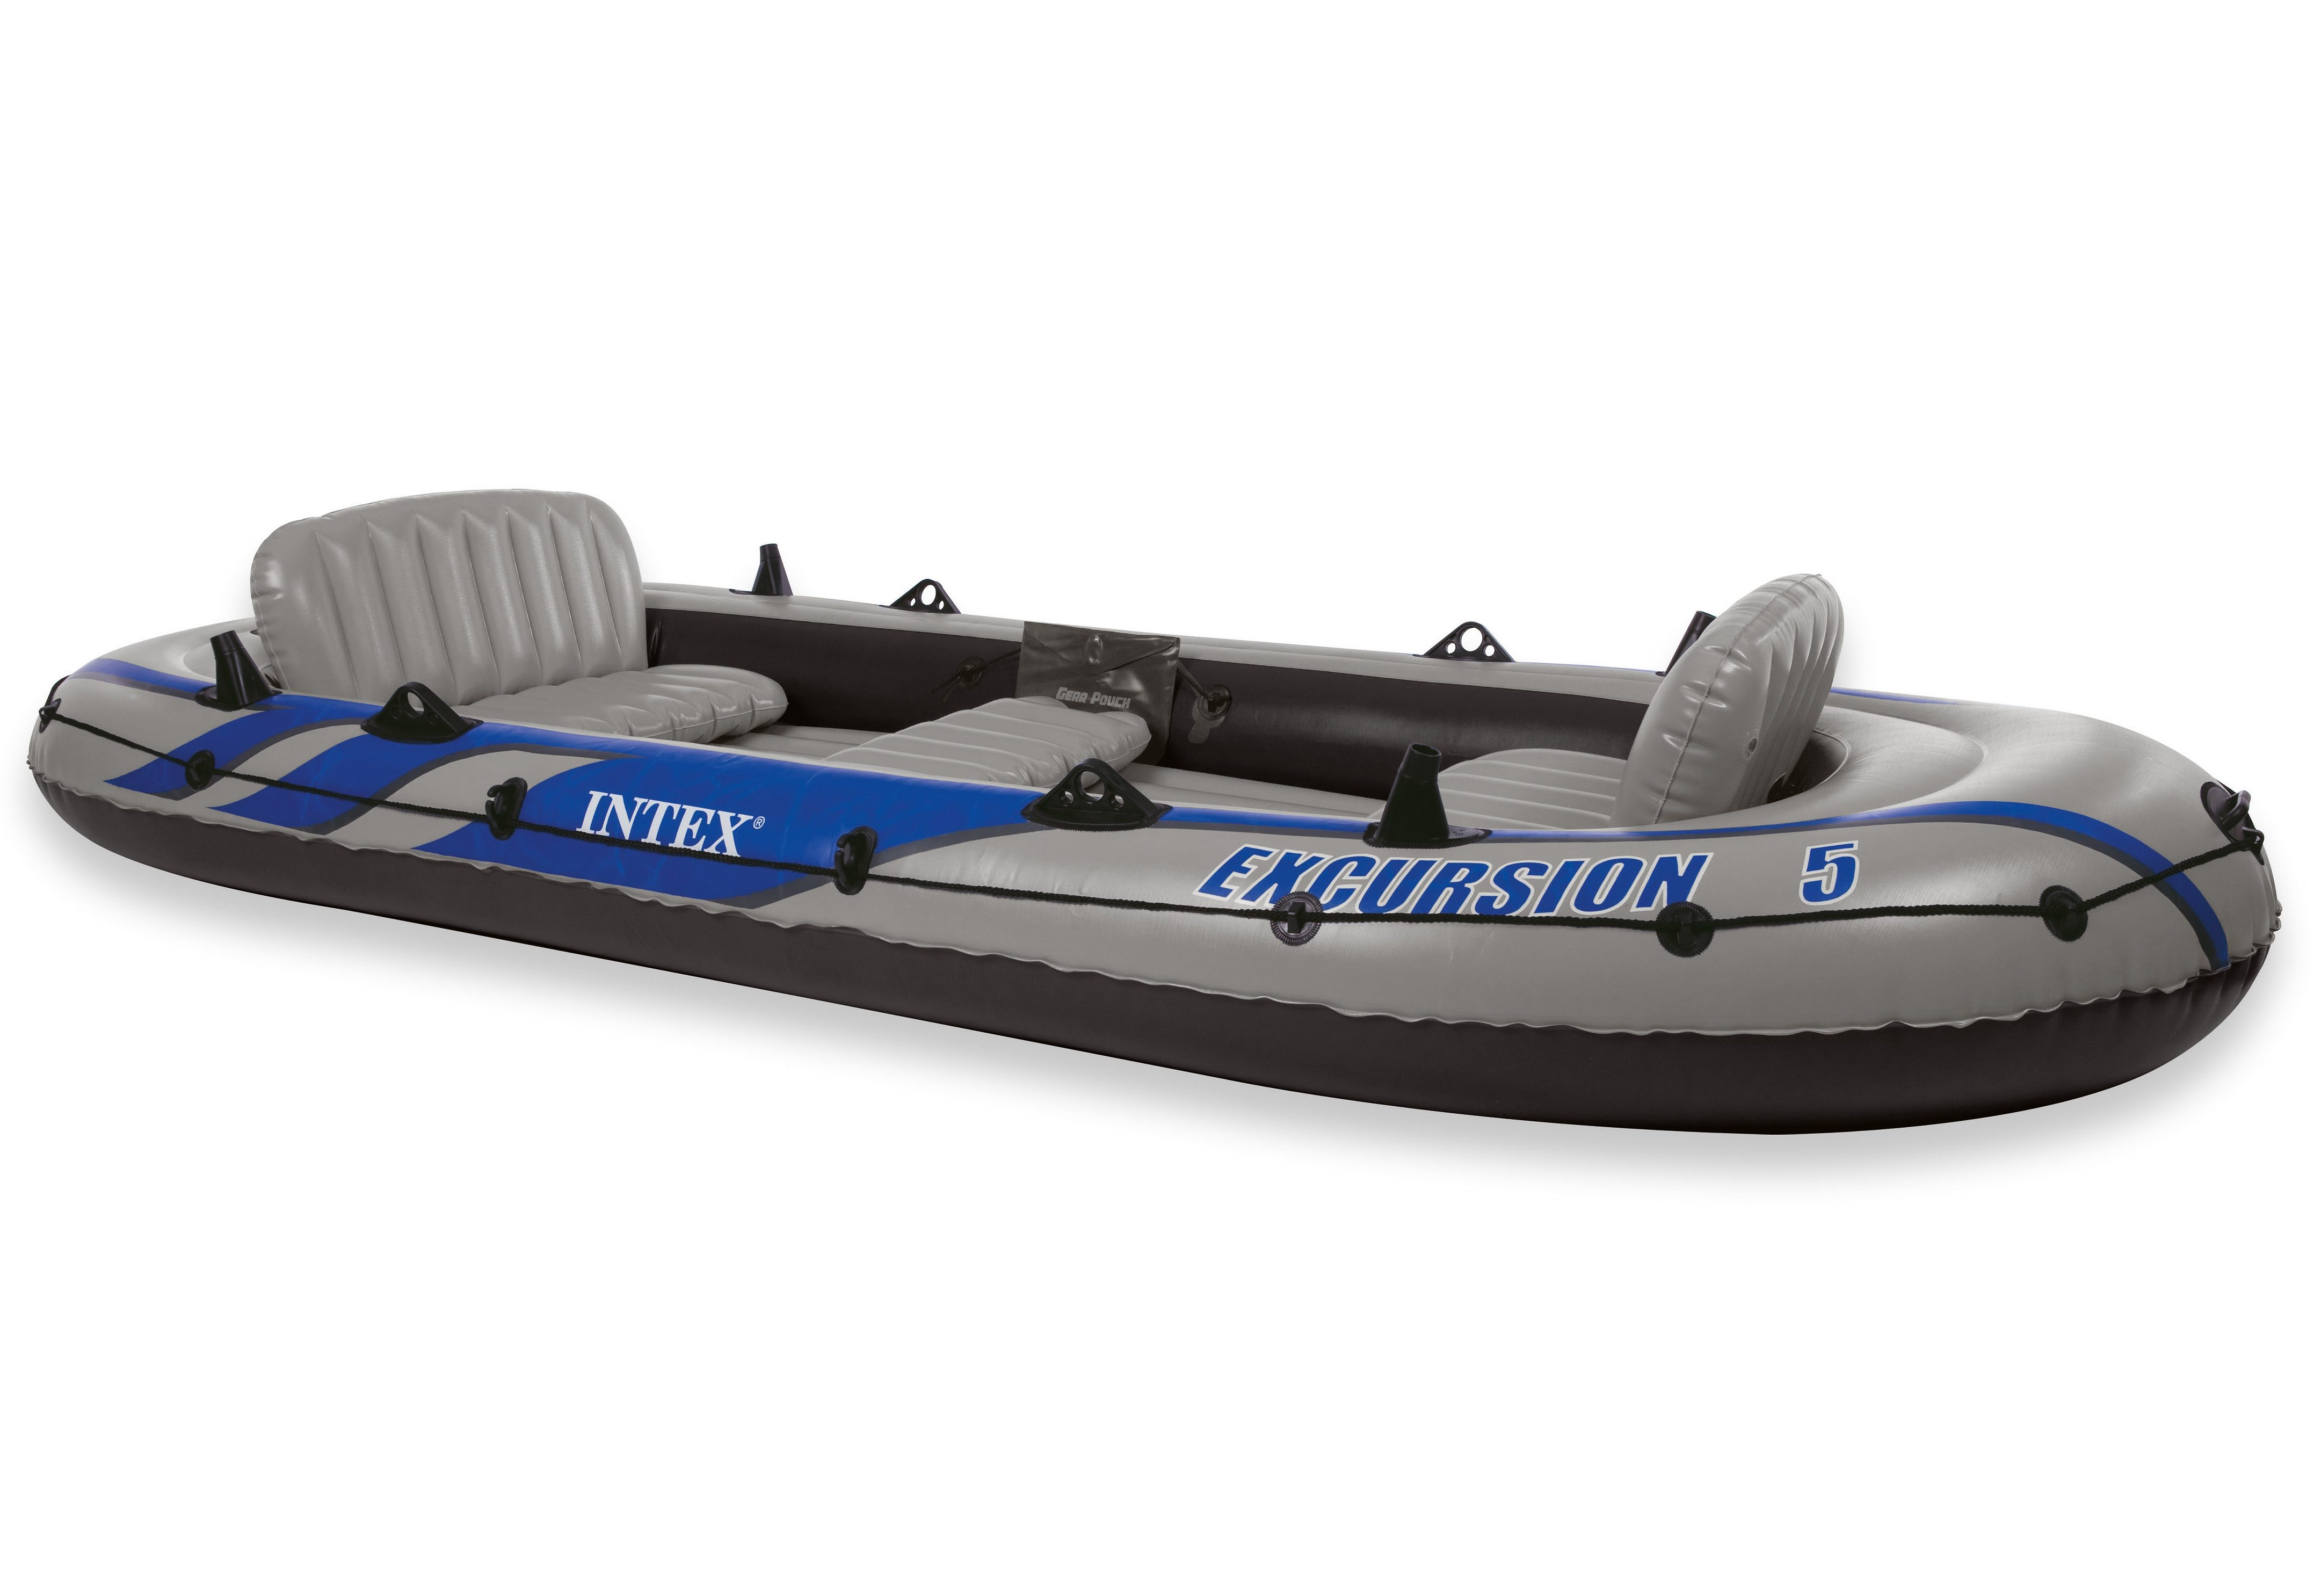 Sportboot-Set, mit 2 Paddeln und Luftpumpe, »Boot-Set Excursion 5«, Intex